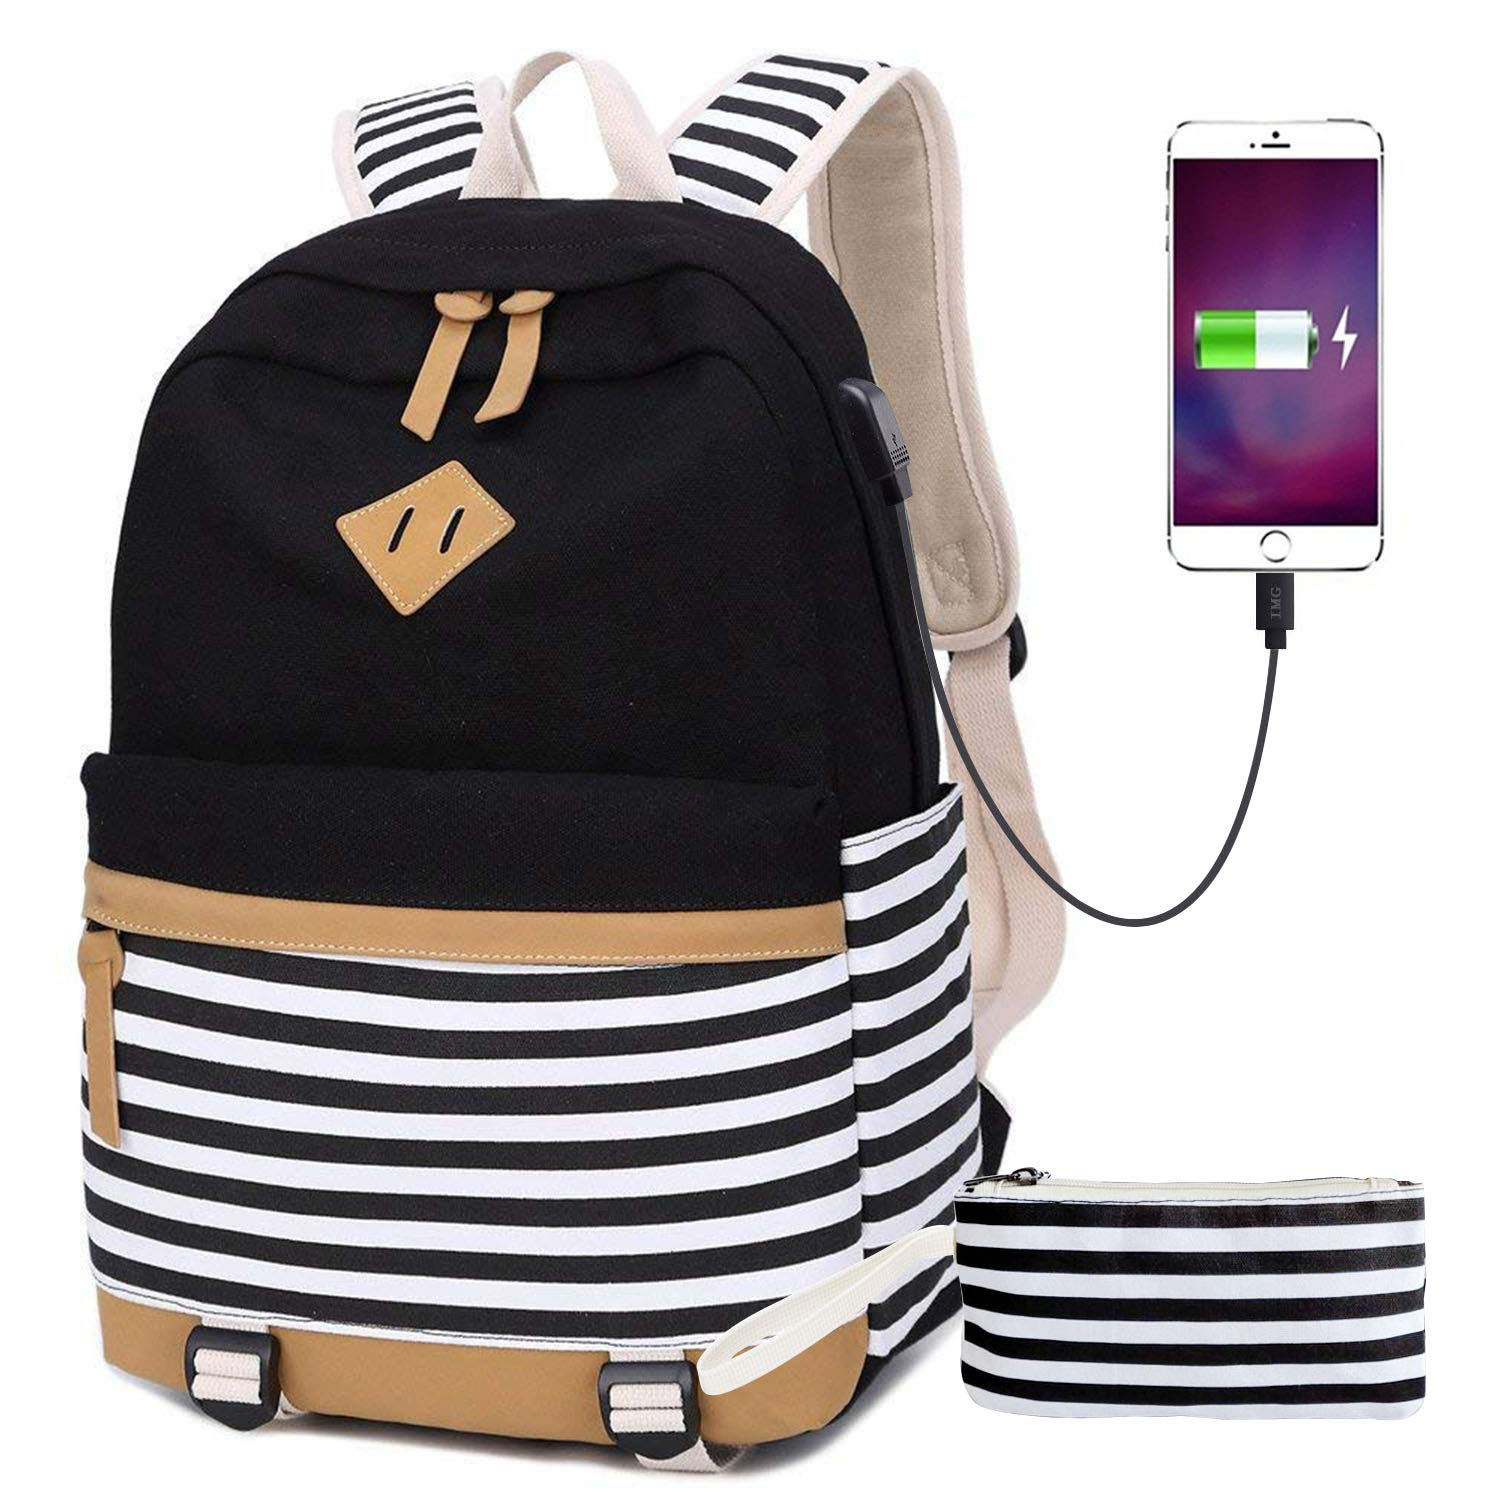 Canvas Student Backpack,USB Backpack,Girls Casual School Bookbag with Pencil case,USB Charging Port,College Laptop Backpacks for Men/Women,Teen Boys/Girls.(Black Strips)